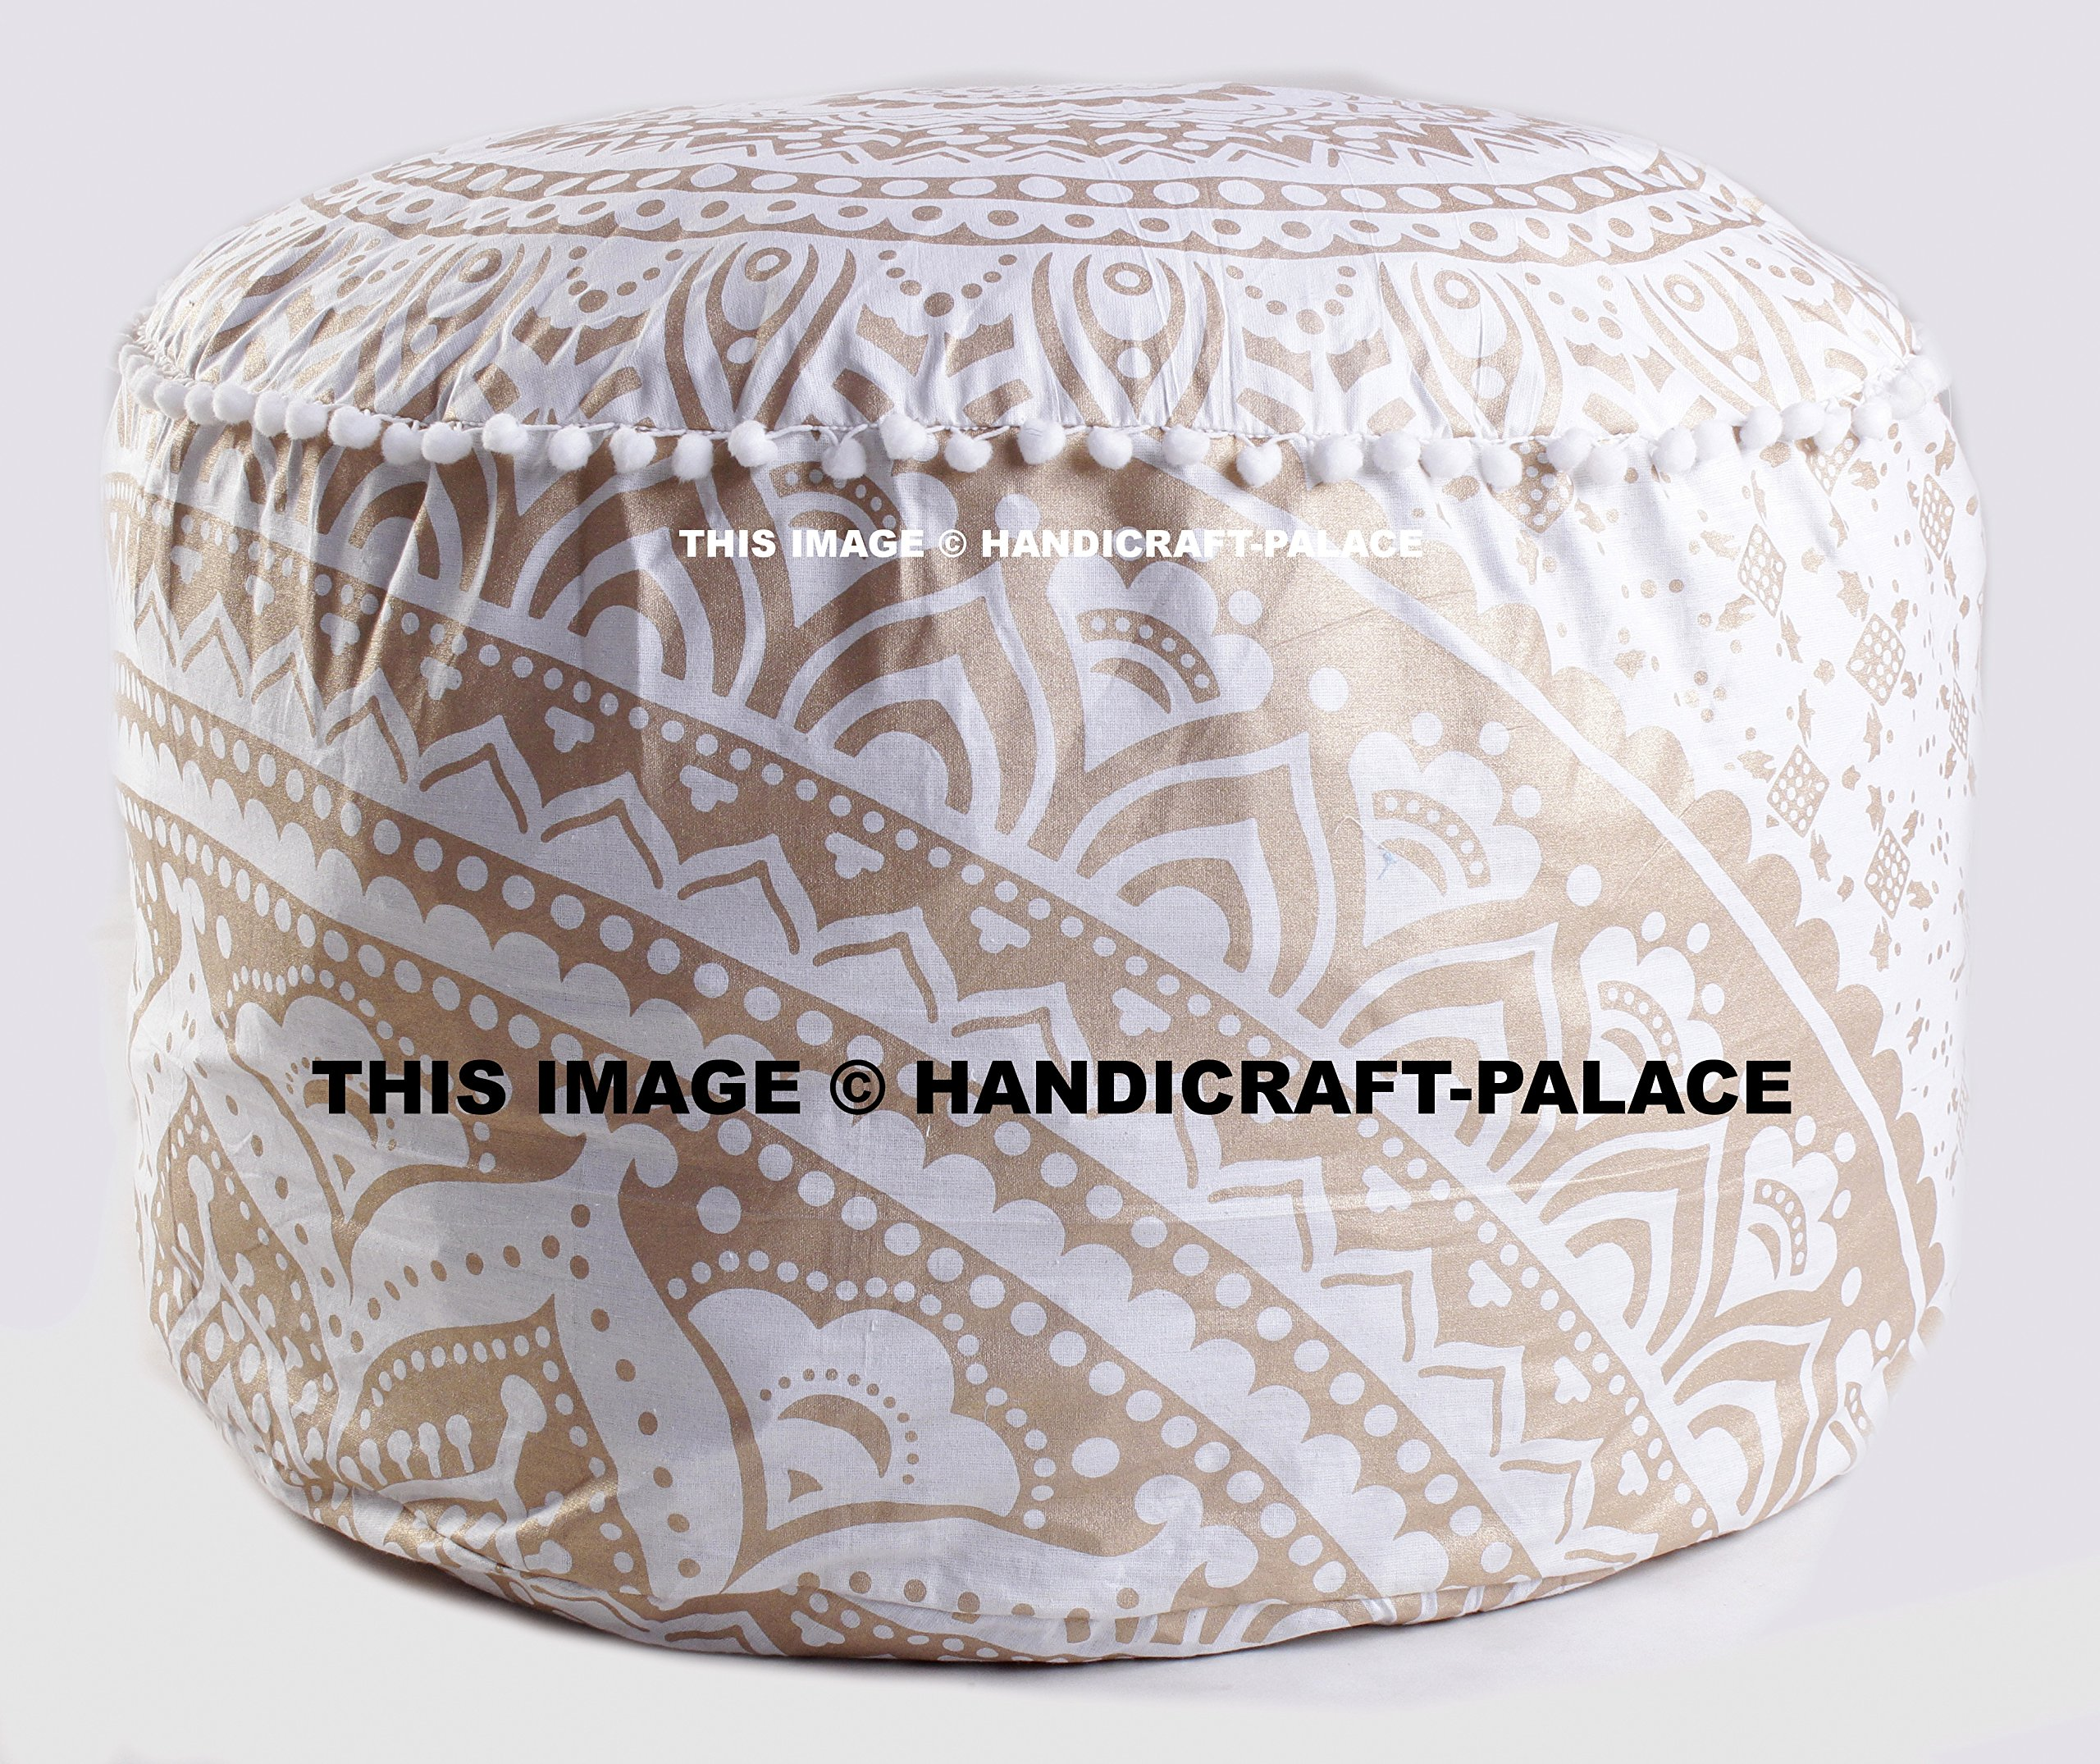 OMBRE MANDALA ROUND FLOOR OTTOMAN POUF GOLD COLORED PILLOW COVER INDIAN DECOR